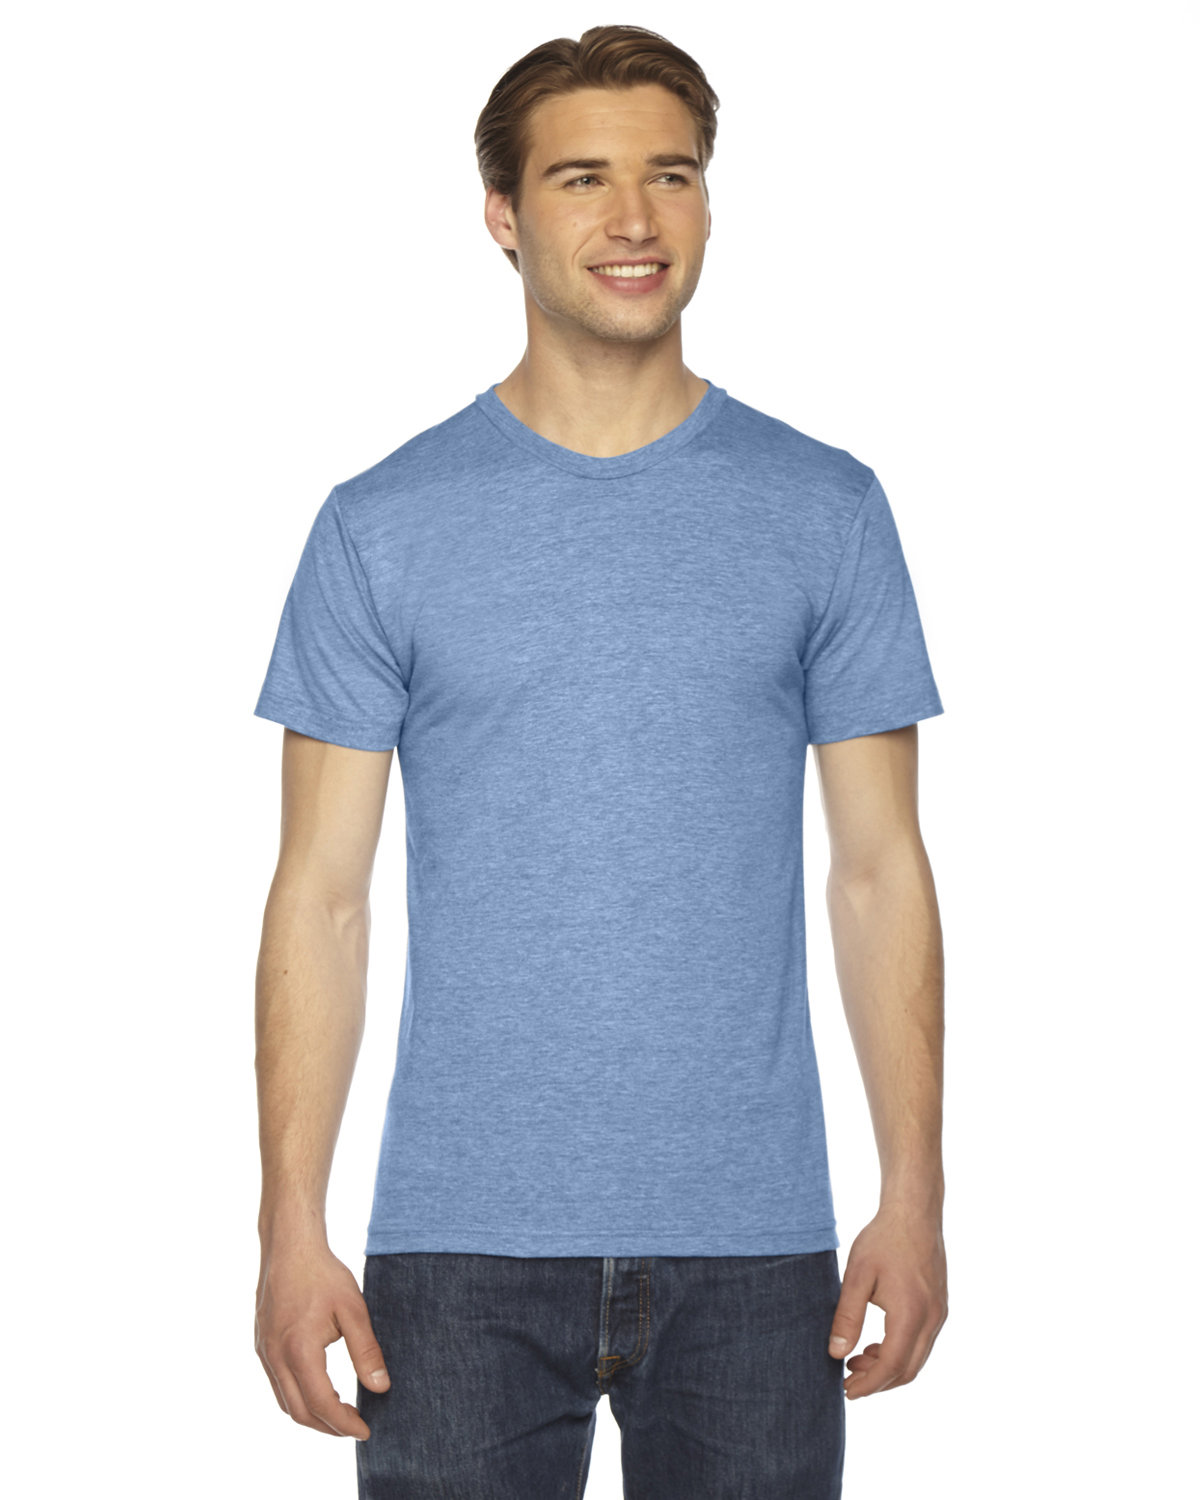 American Apparel Unisex Triblend Short-Sleeve Track T-Shirt ATHLETIC BLUE